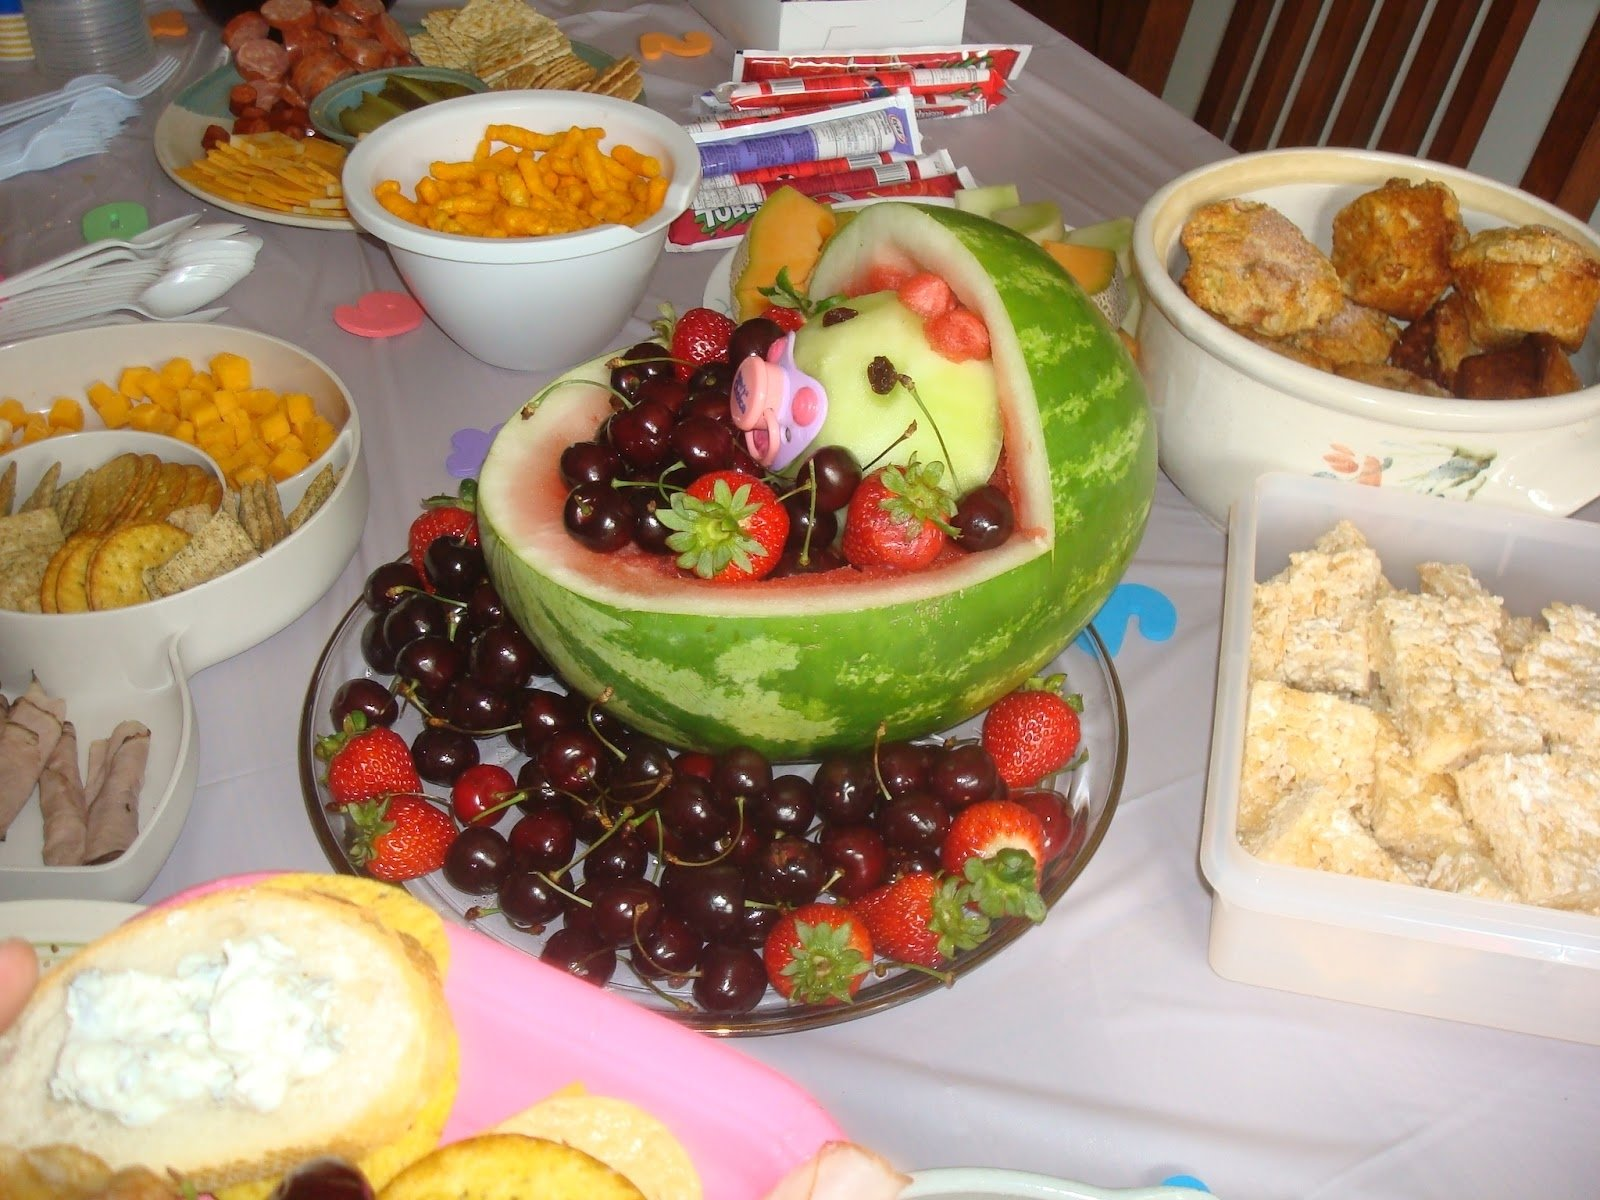 10 Stylish Food For Baby Shower Ideas food for baby shower recipes e280a2 baby showers ideas 2020